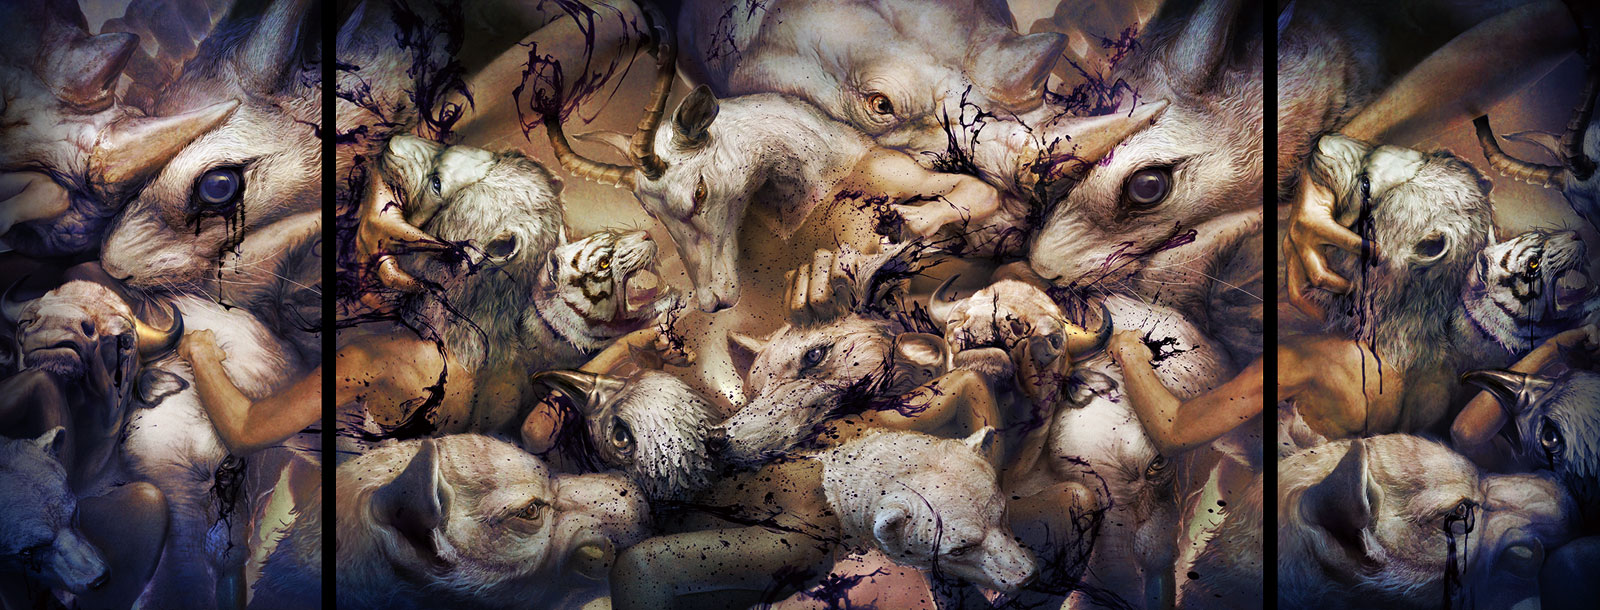 Artwork by Ryohei Hase